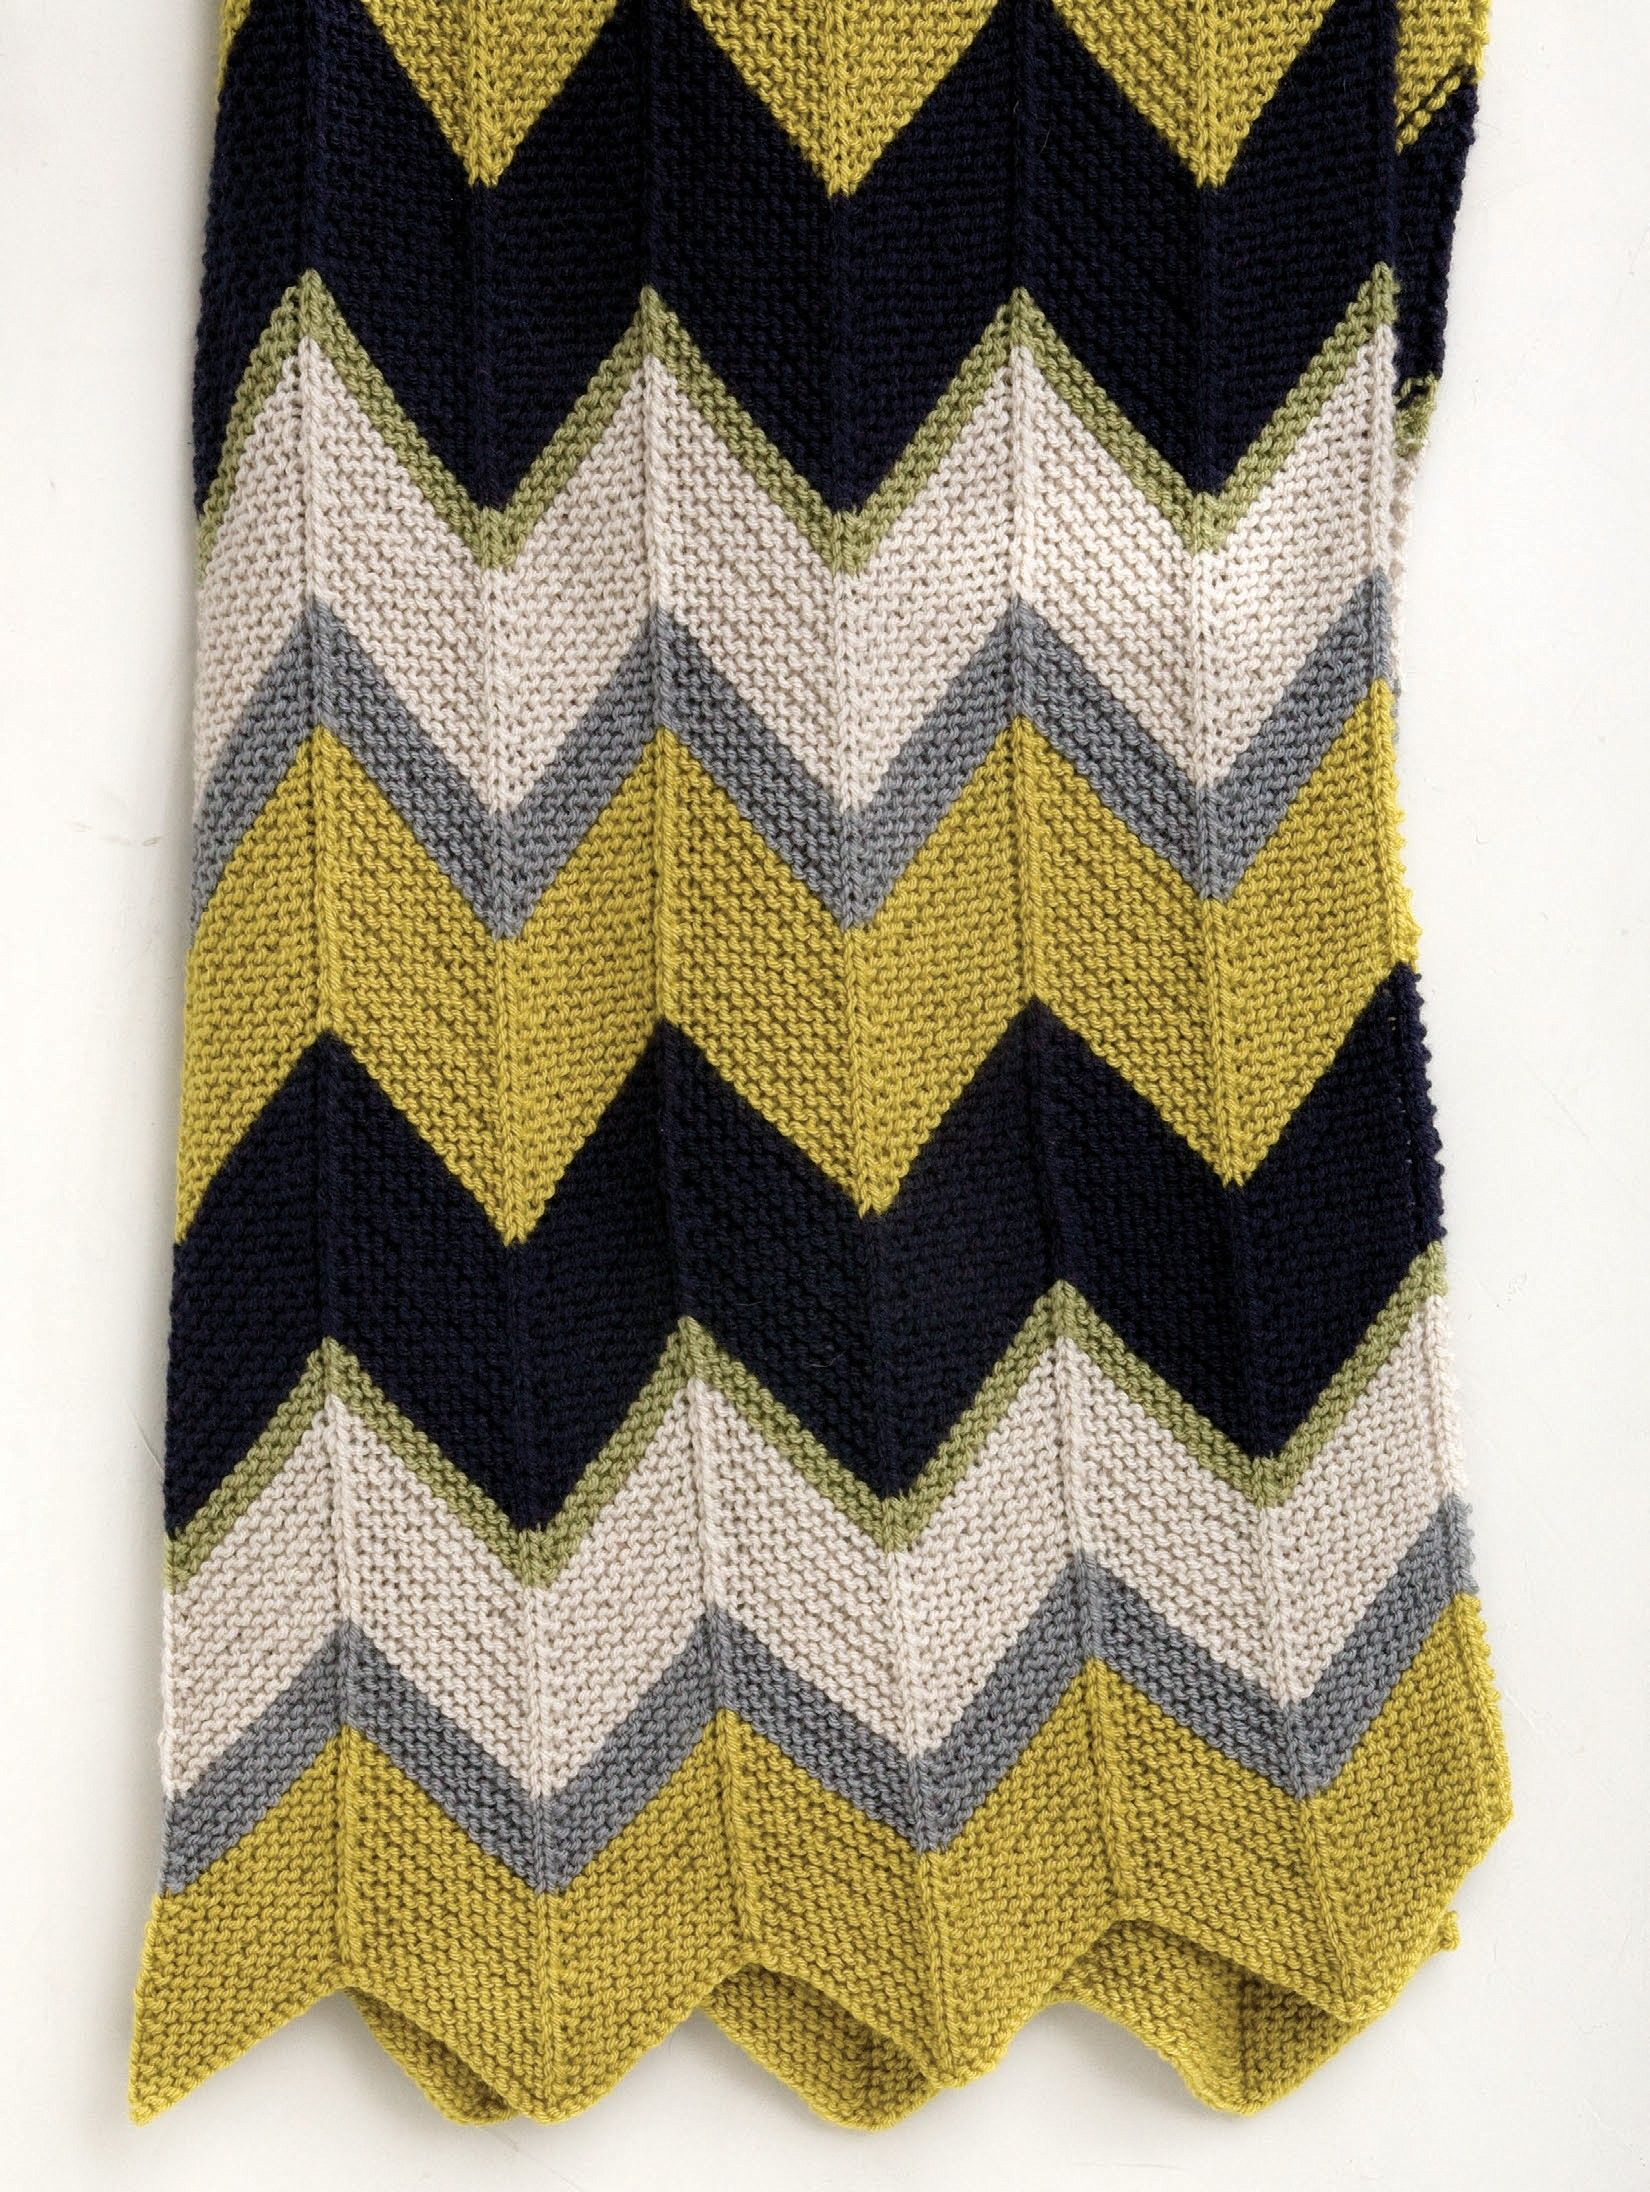 Updated ripple afghan knit knitting pinterest ripple updated ripple afghan in lion brand vannas choice discover more patterns by lion brand at loveknitting the worlds largest range of knitting supplies bankloansurffo Images